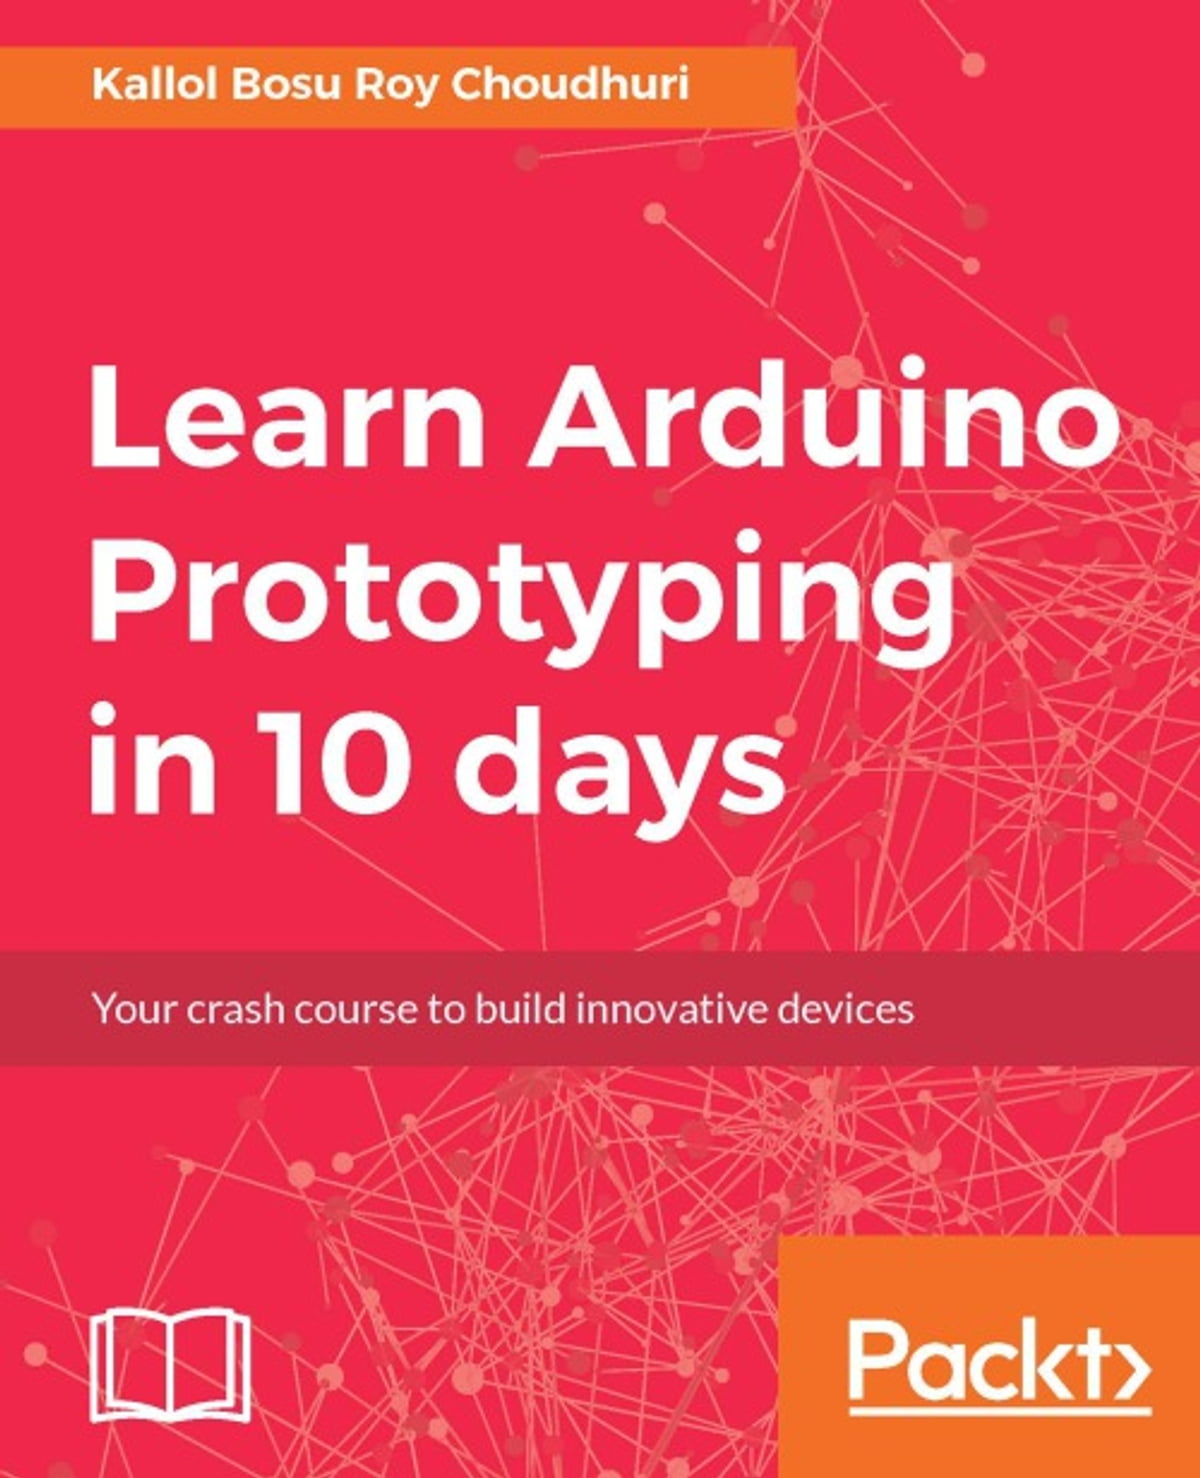 Learn arduino prototyping in 10 days ebook by kallol bosu roy learn arduino prototyping in 10 days ebook by kallol bosu roy choudhuri 9781788298544 rakuten kobo fandeluxe Image collections